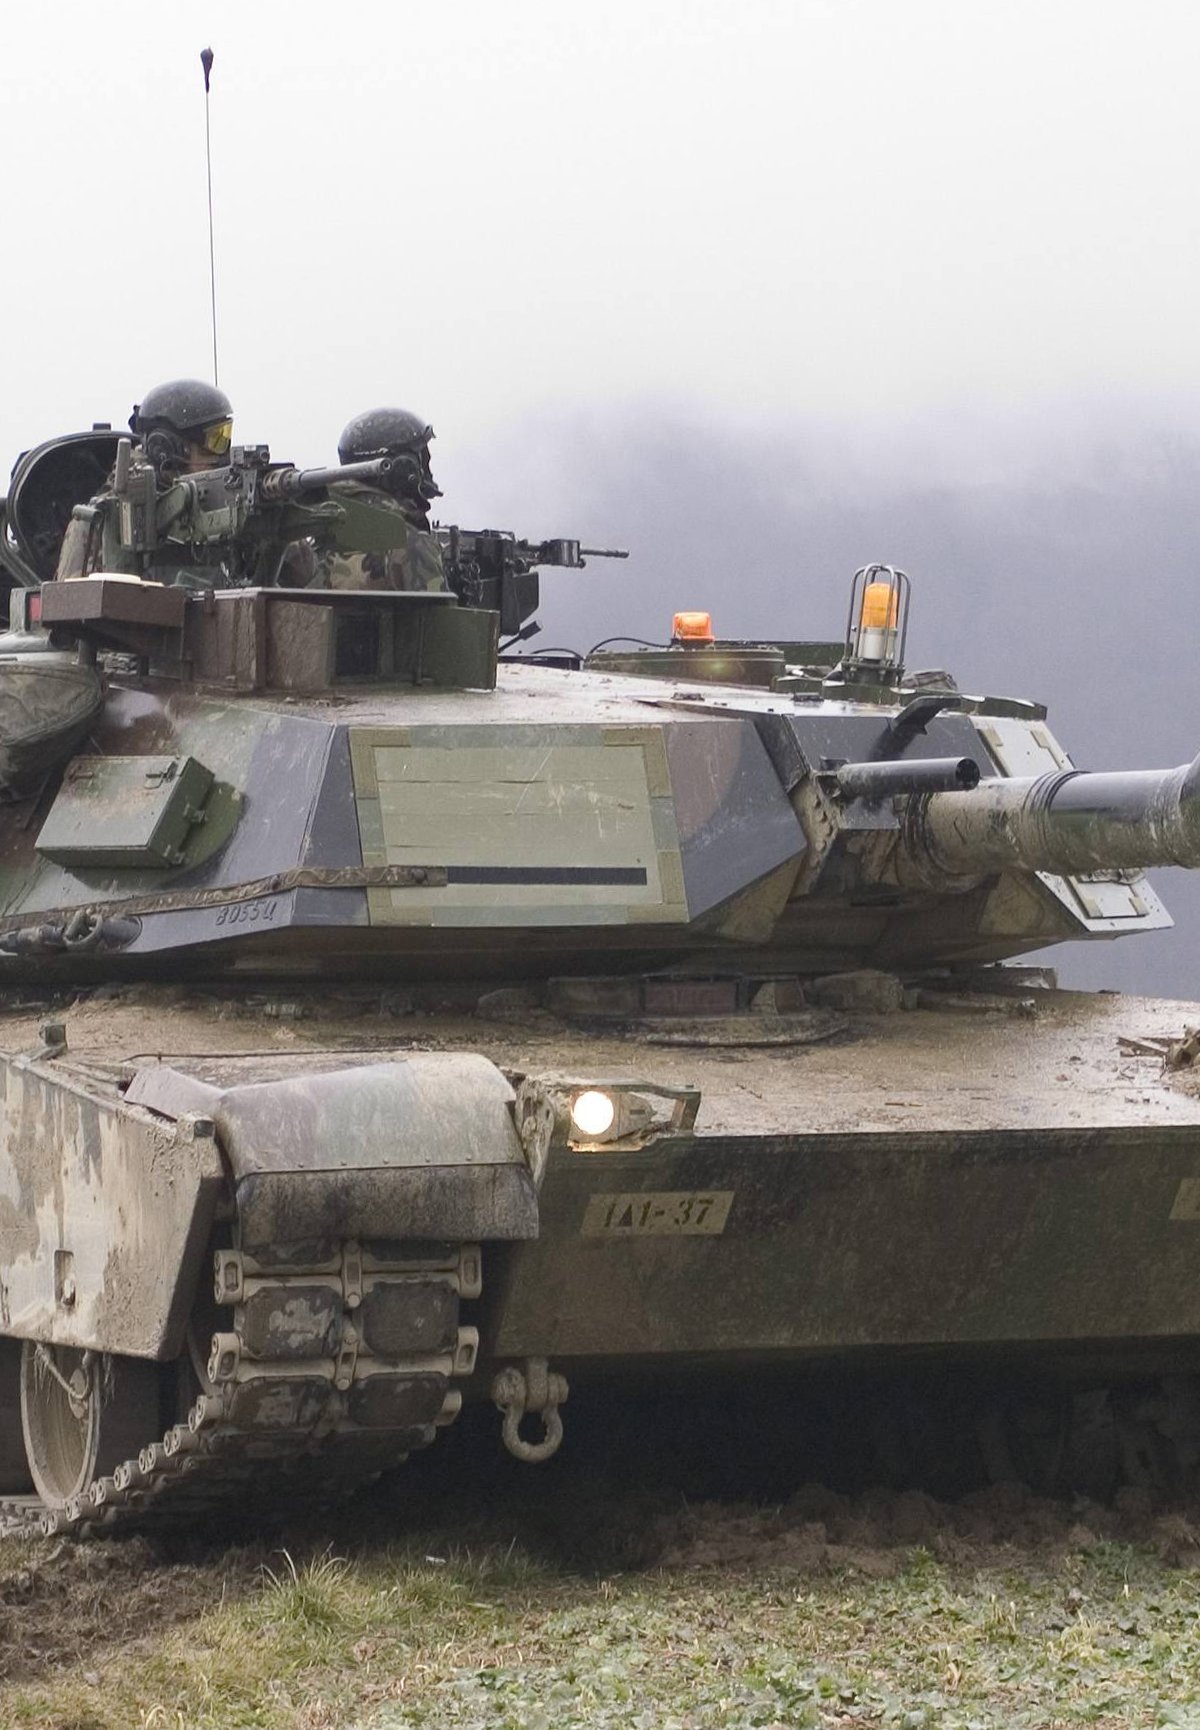 Defense tank equipped with an Allison transmission